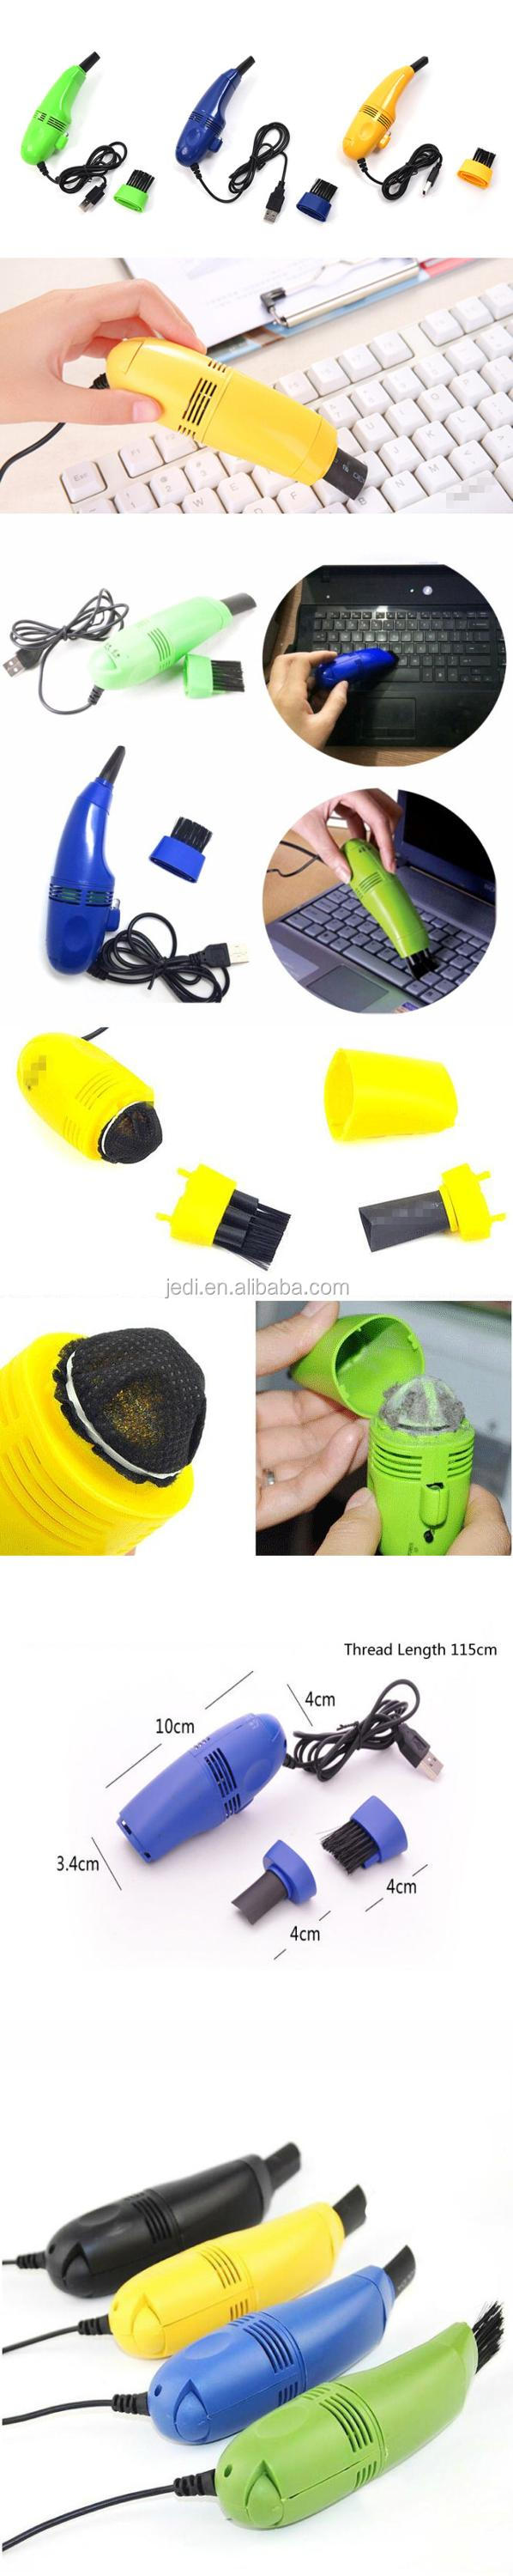 Colorful Mini Usb Desk Vacuum Cleaner For Keyboard Buy Desktop